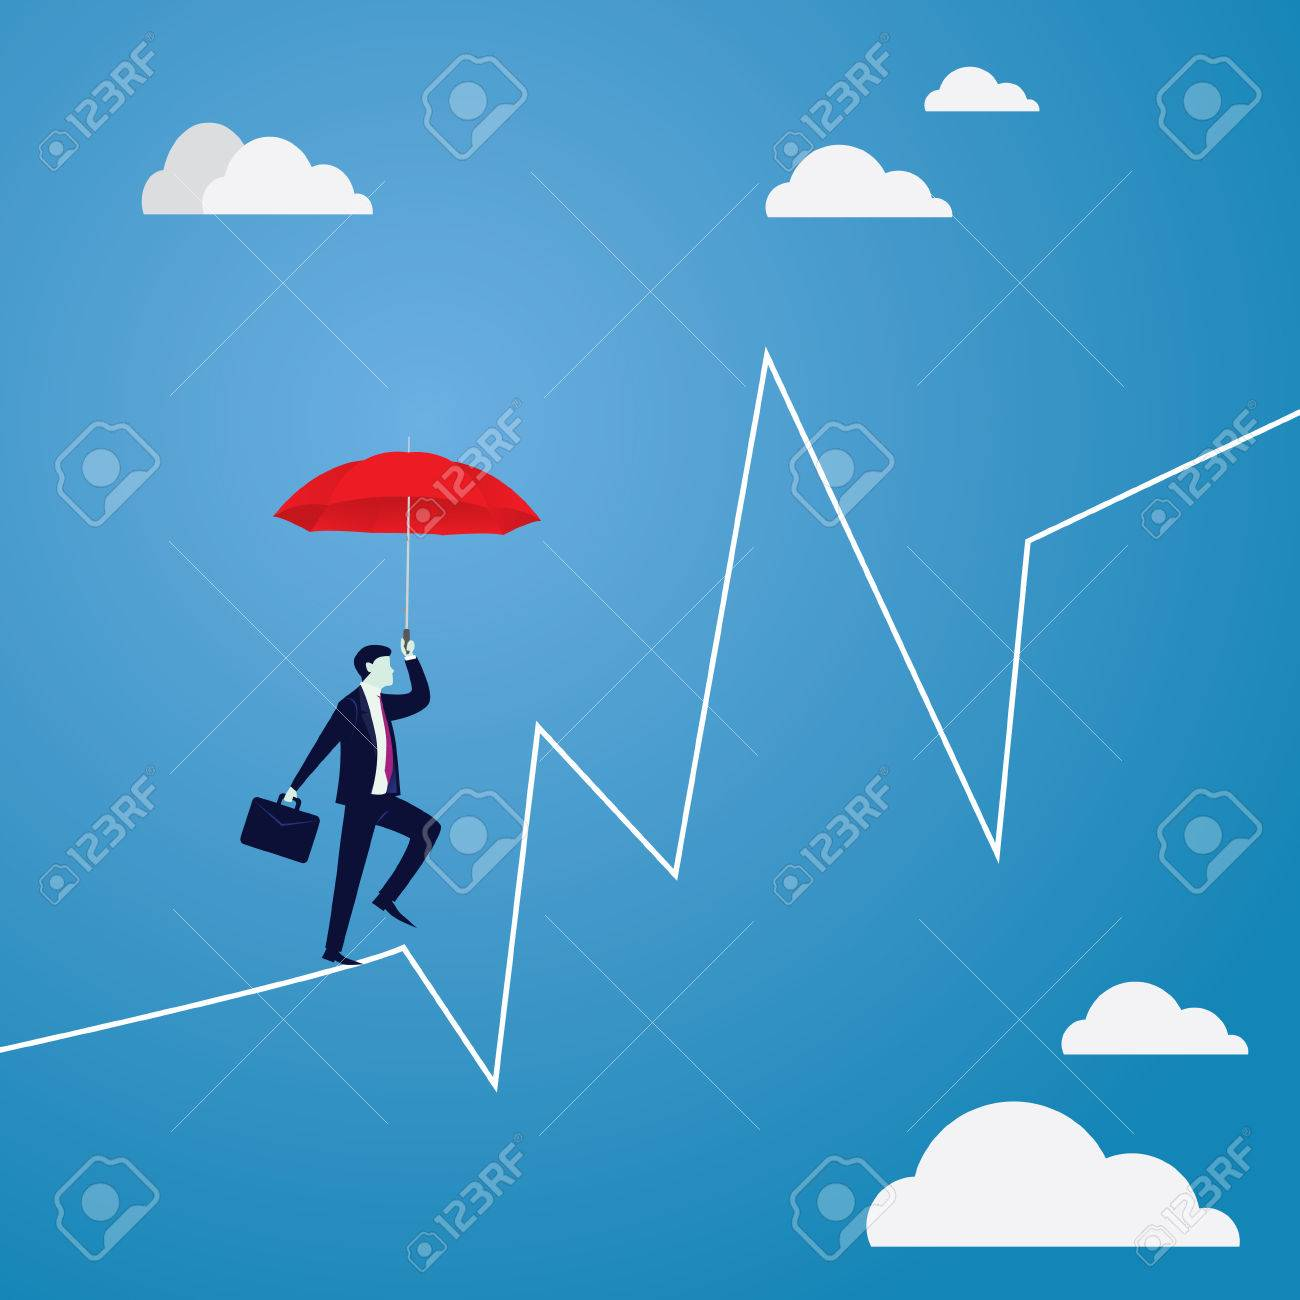 Risk challenge in business concept. - 85213469